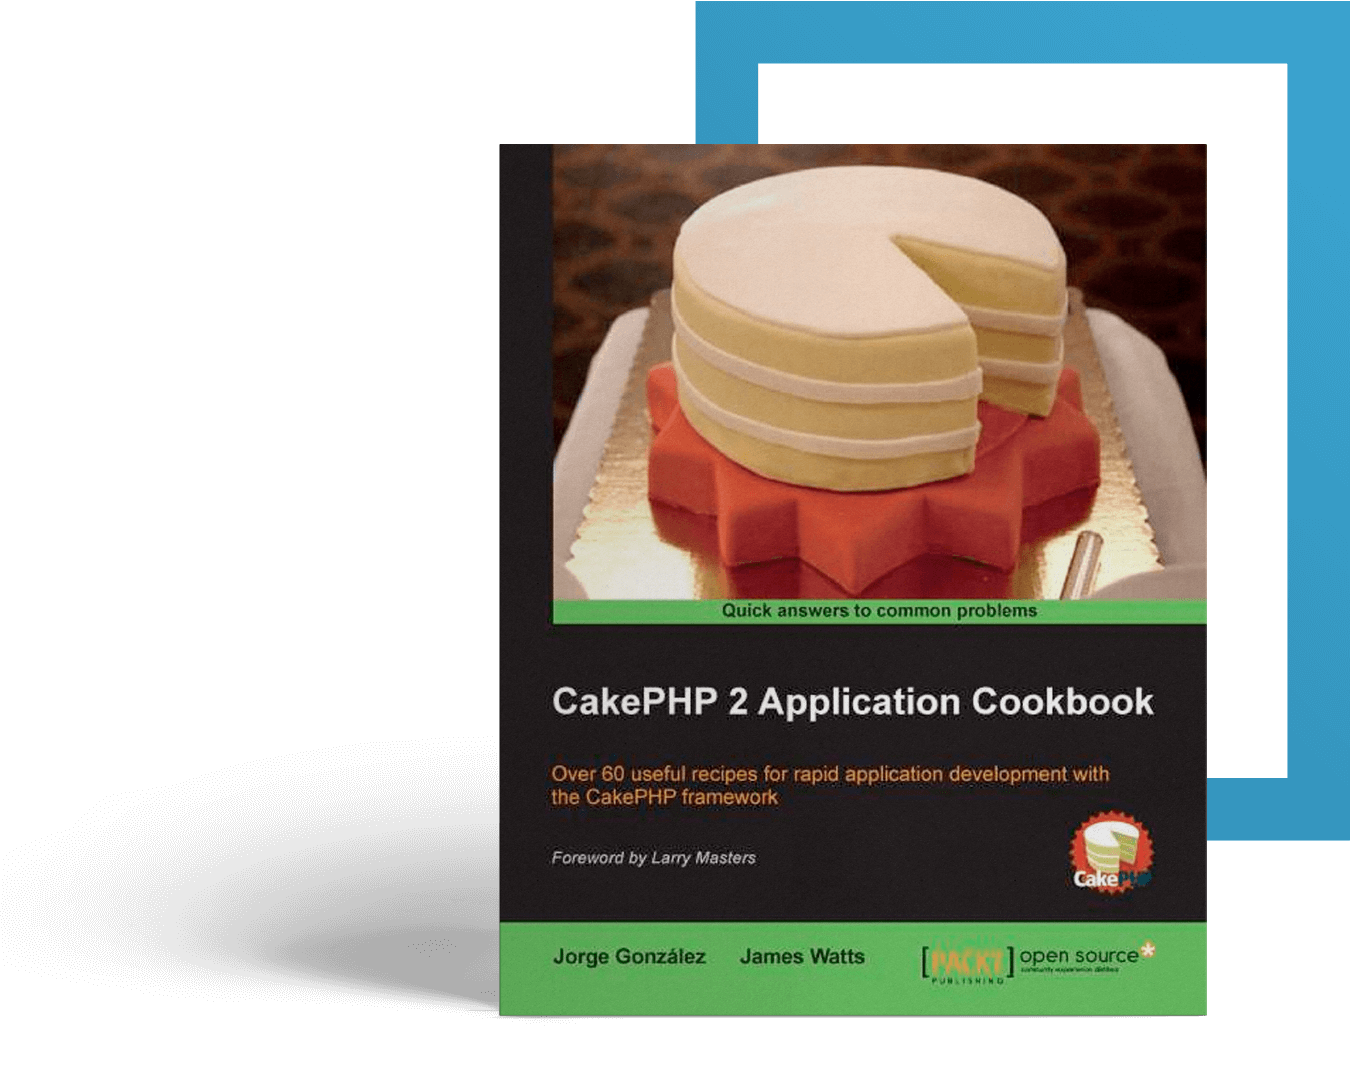 CakePHP Book